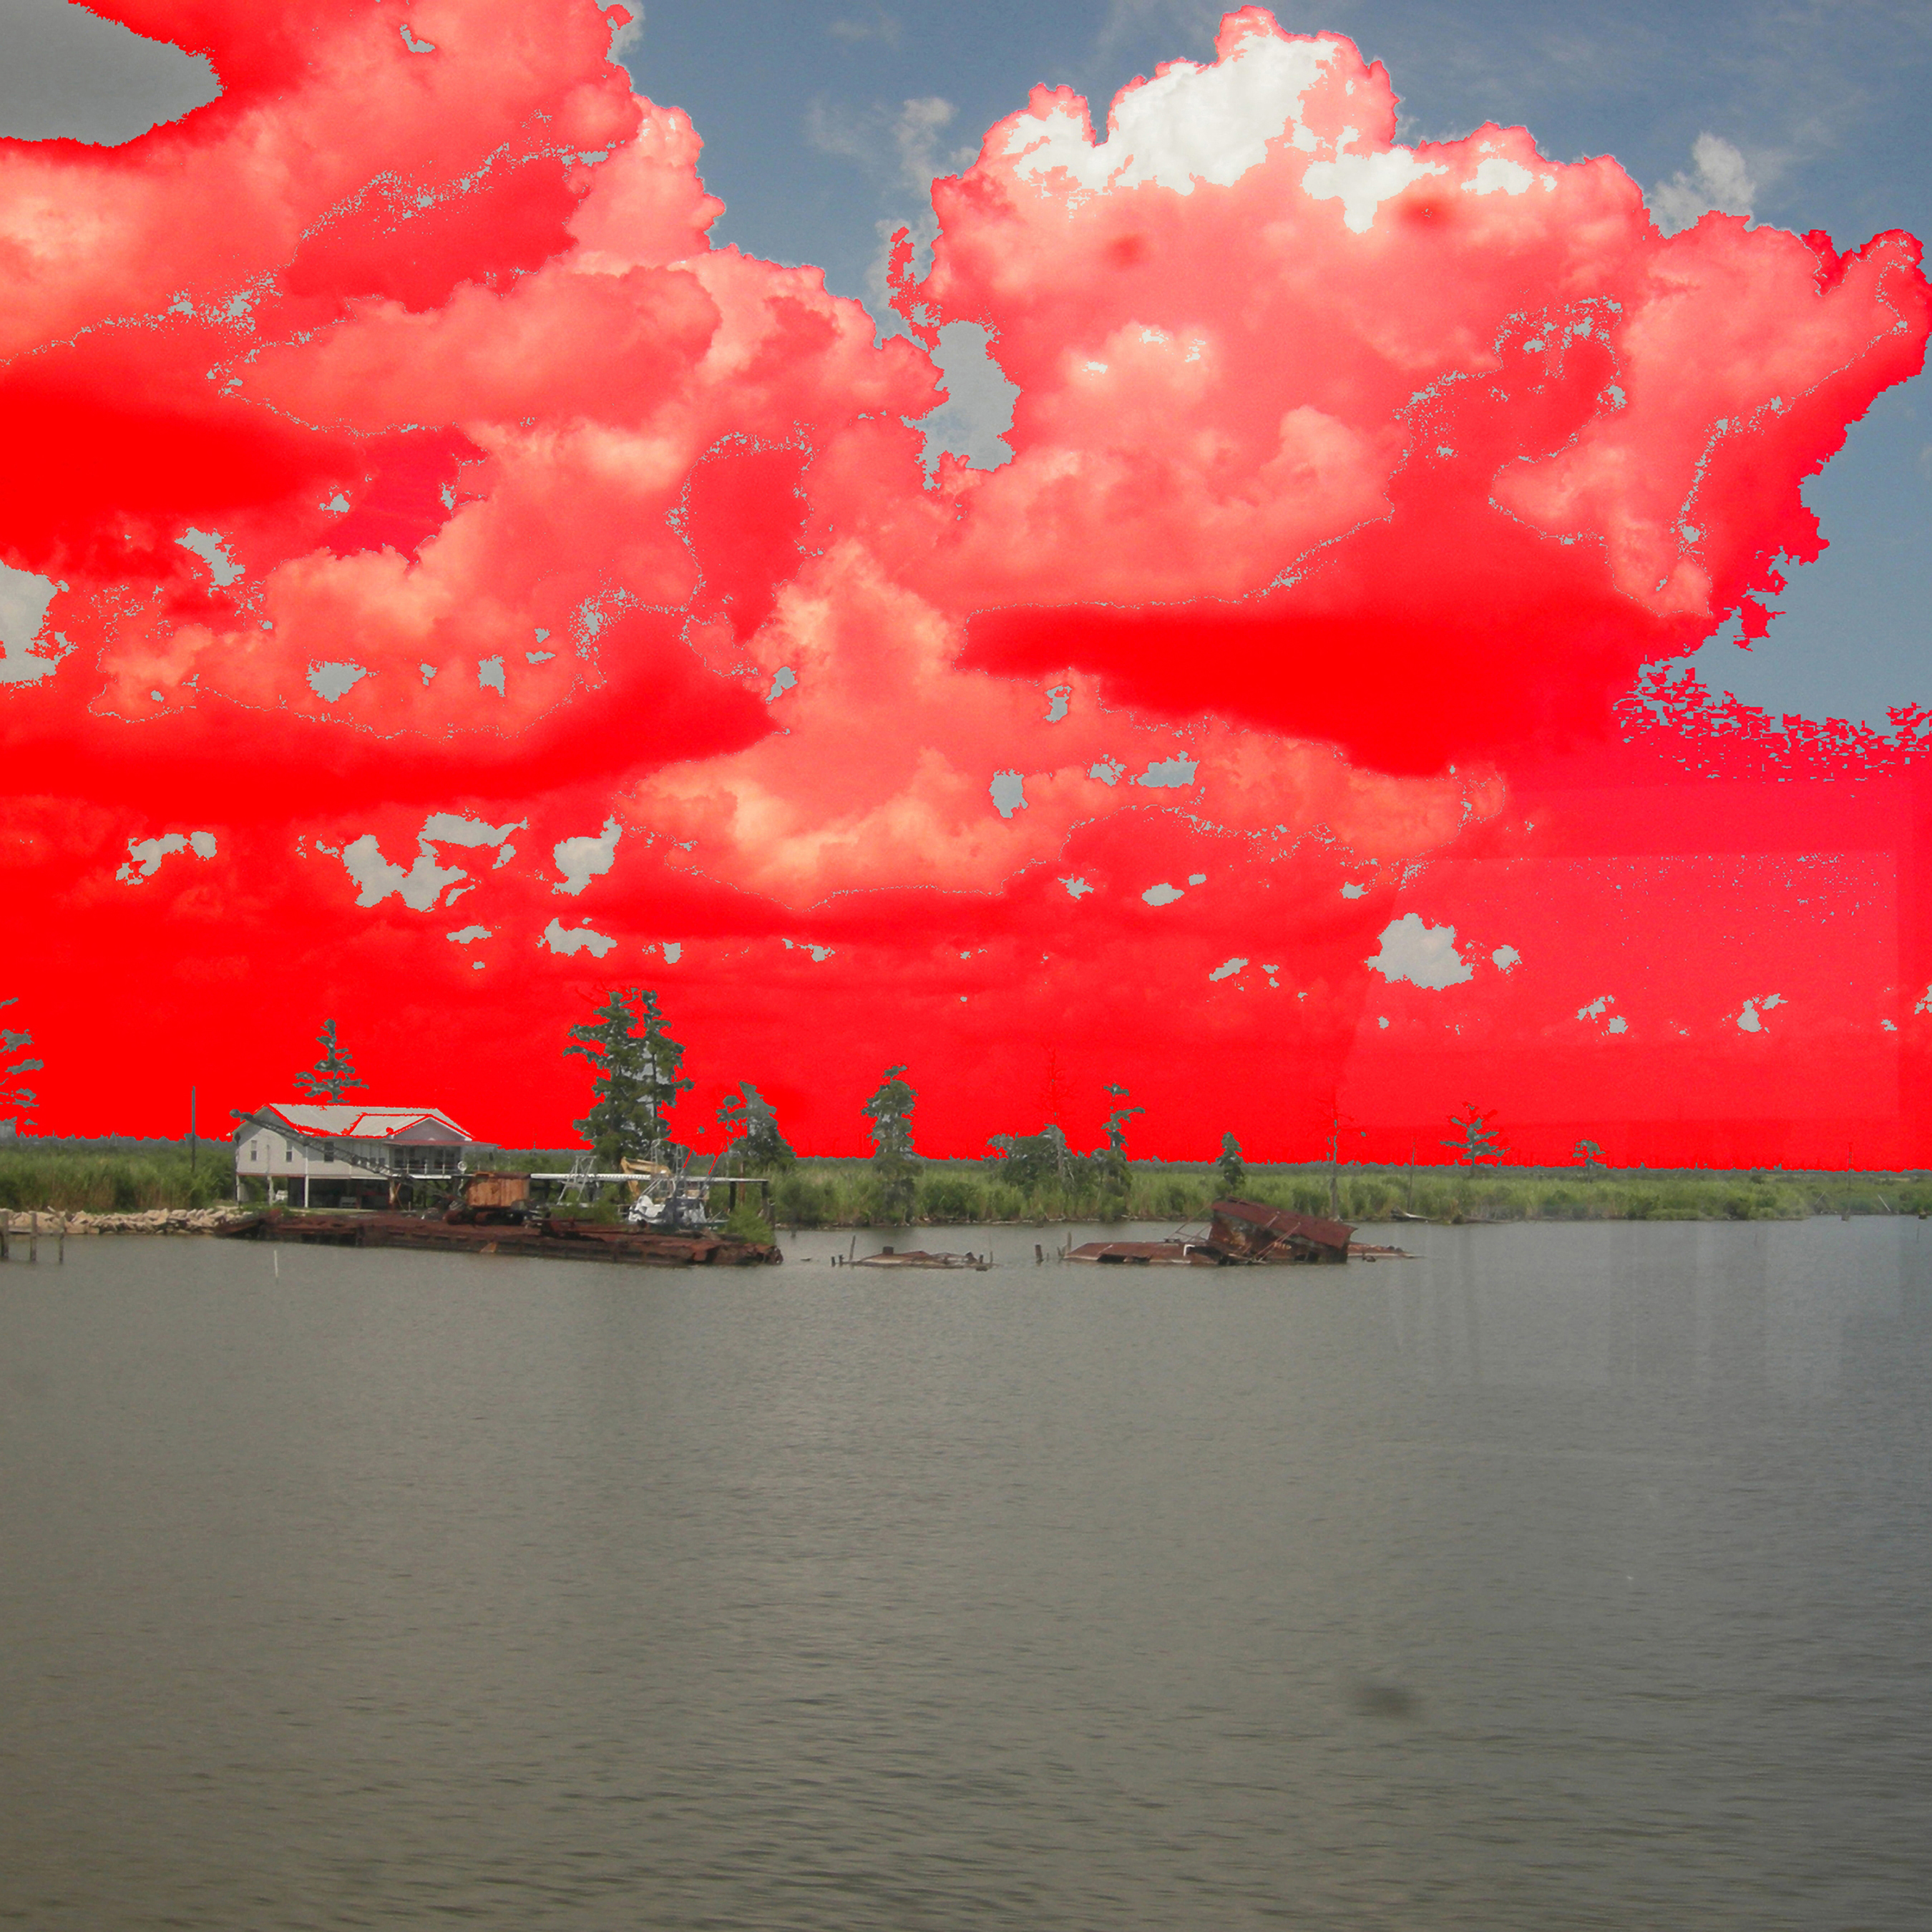 Aviva Rahmani, Warming Skies Over the Louisiana Bayous Seen From a Train Window (c. 2009)